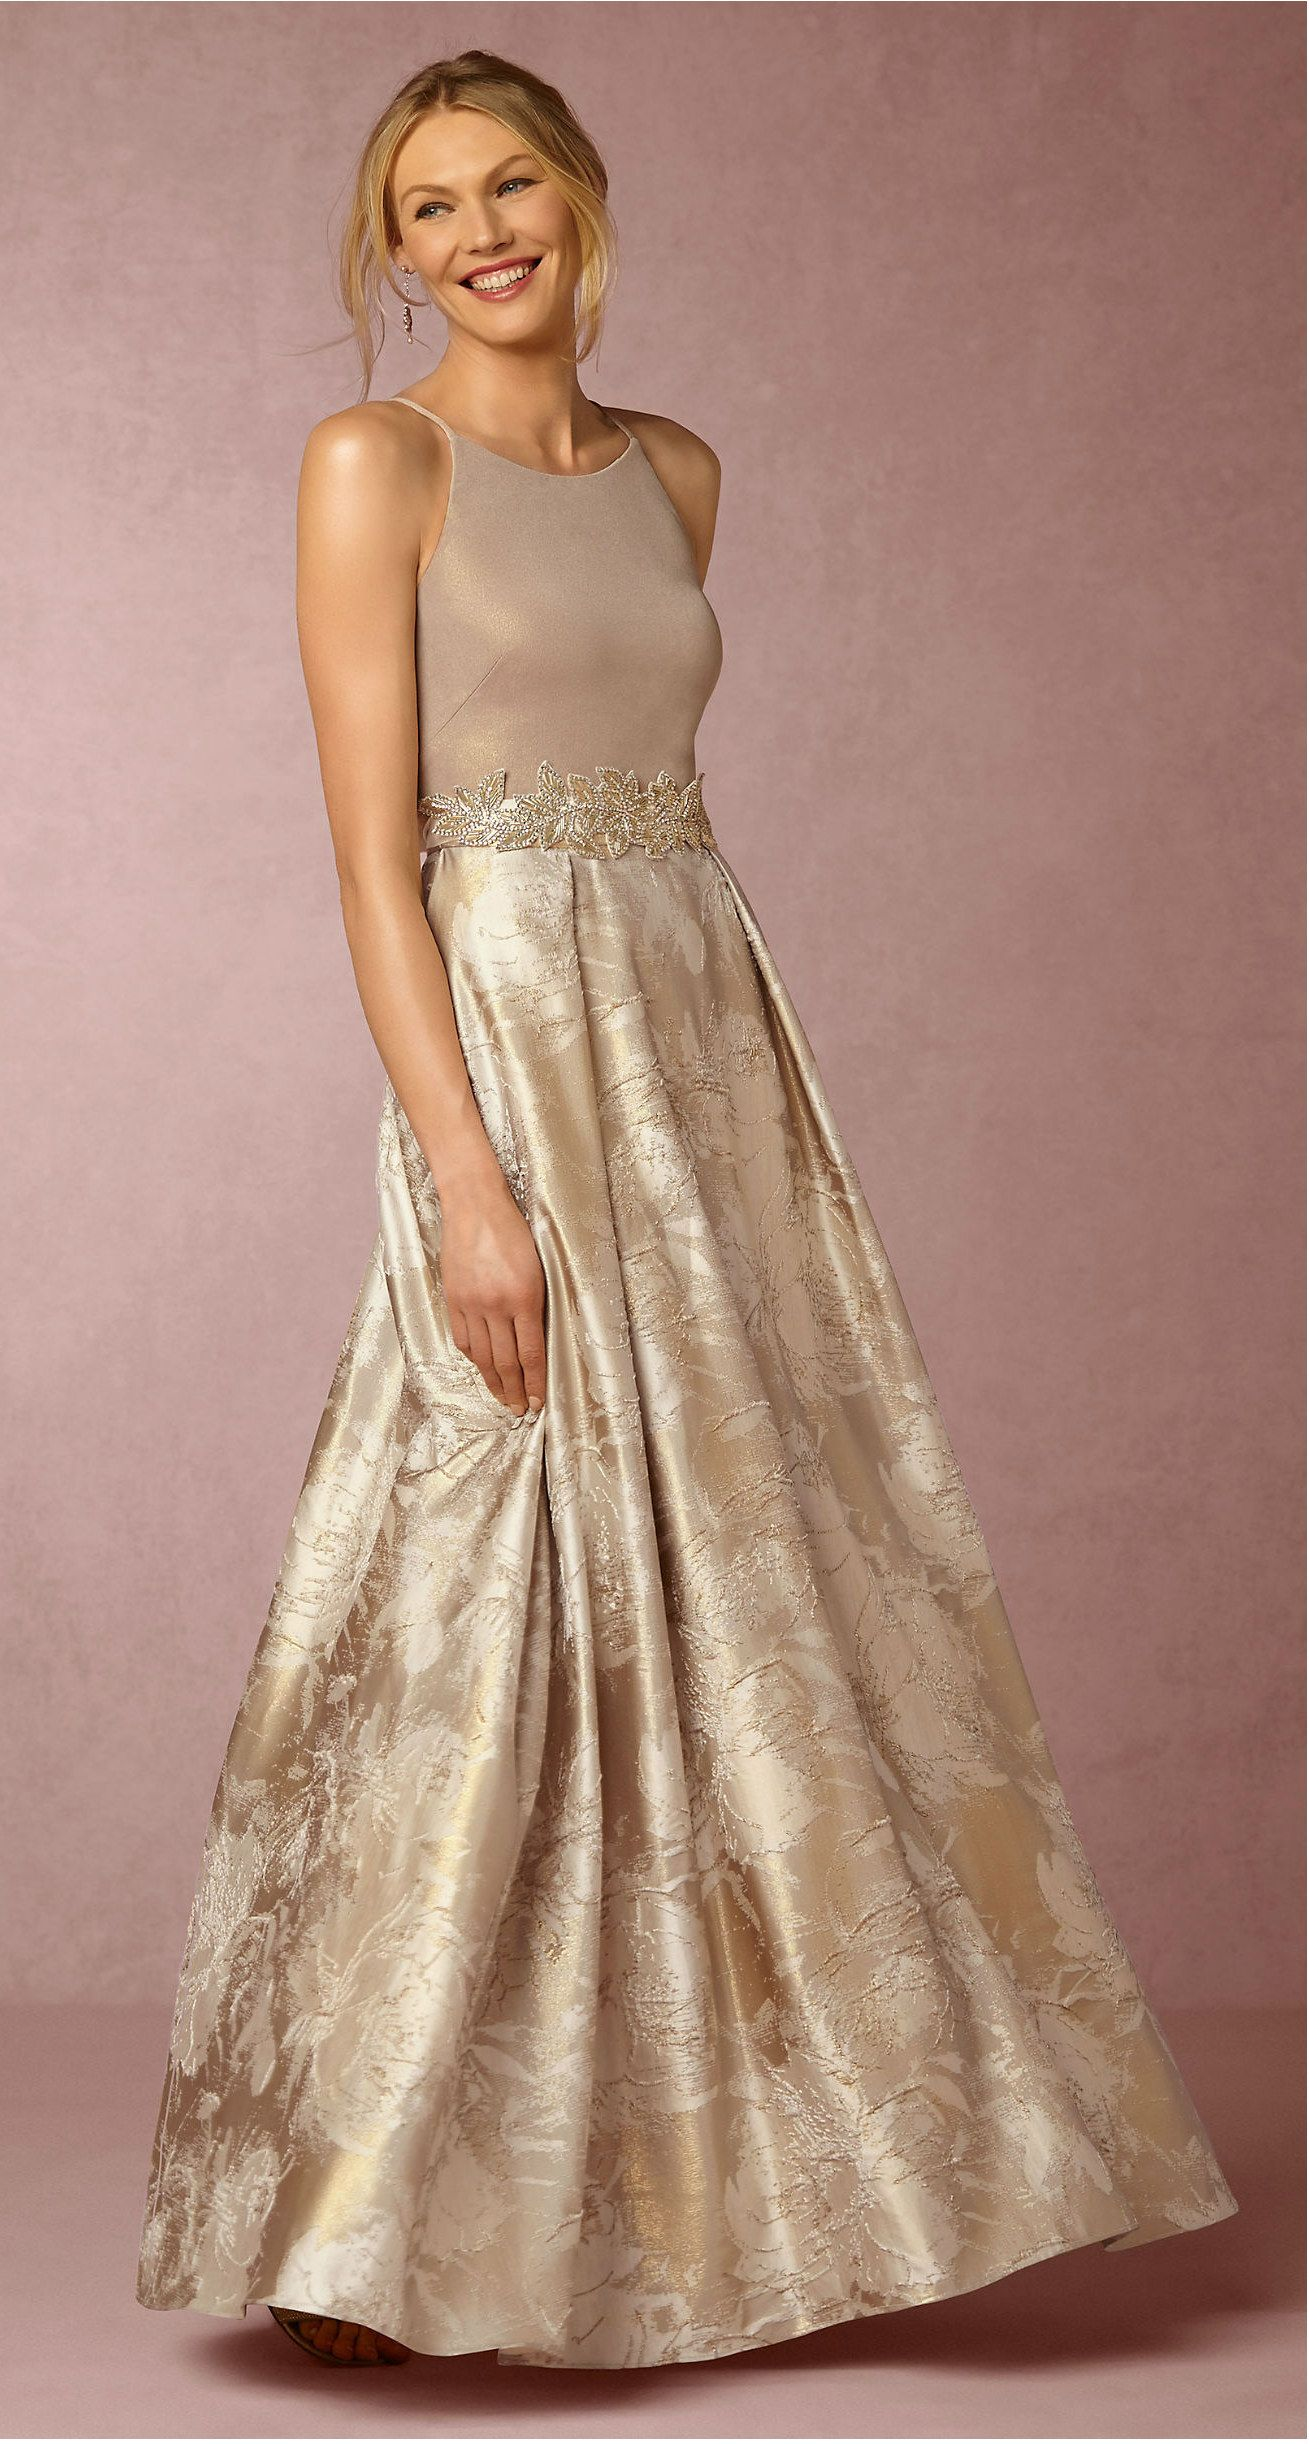 Champagne Mother Of The Bride Dress Lizbeth From Bhldn